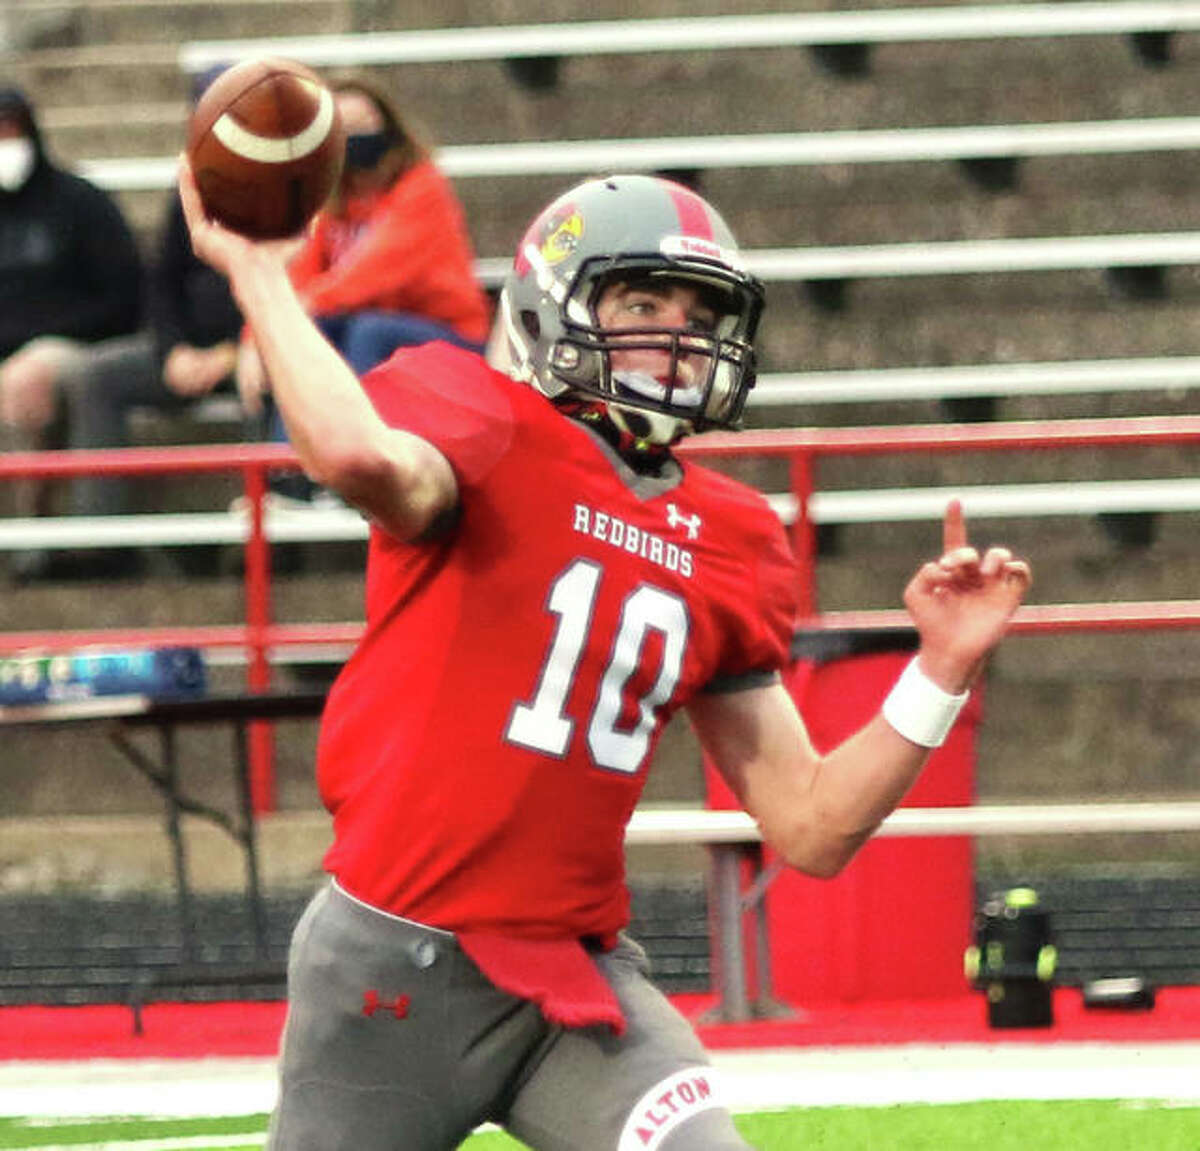 Alton QB Graham McAfoos delivers a pass in the Redbirds' win over Champaign Central on March 30 at Public School Stadium in Alton. The Redbirds are home Friday night to play Belleville West at Public School Stadium in Alton.